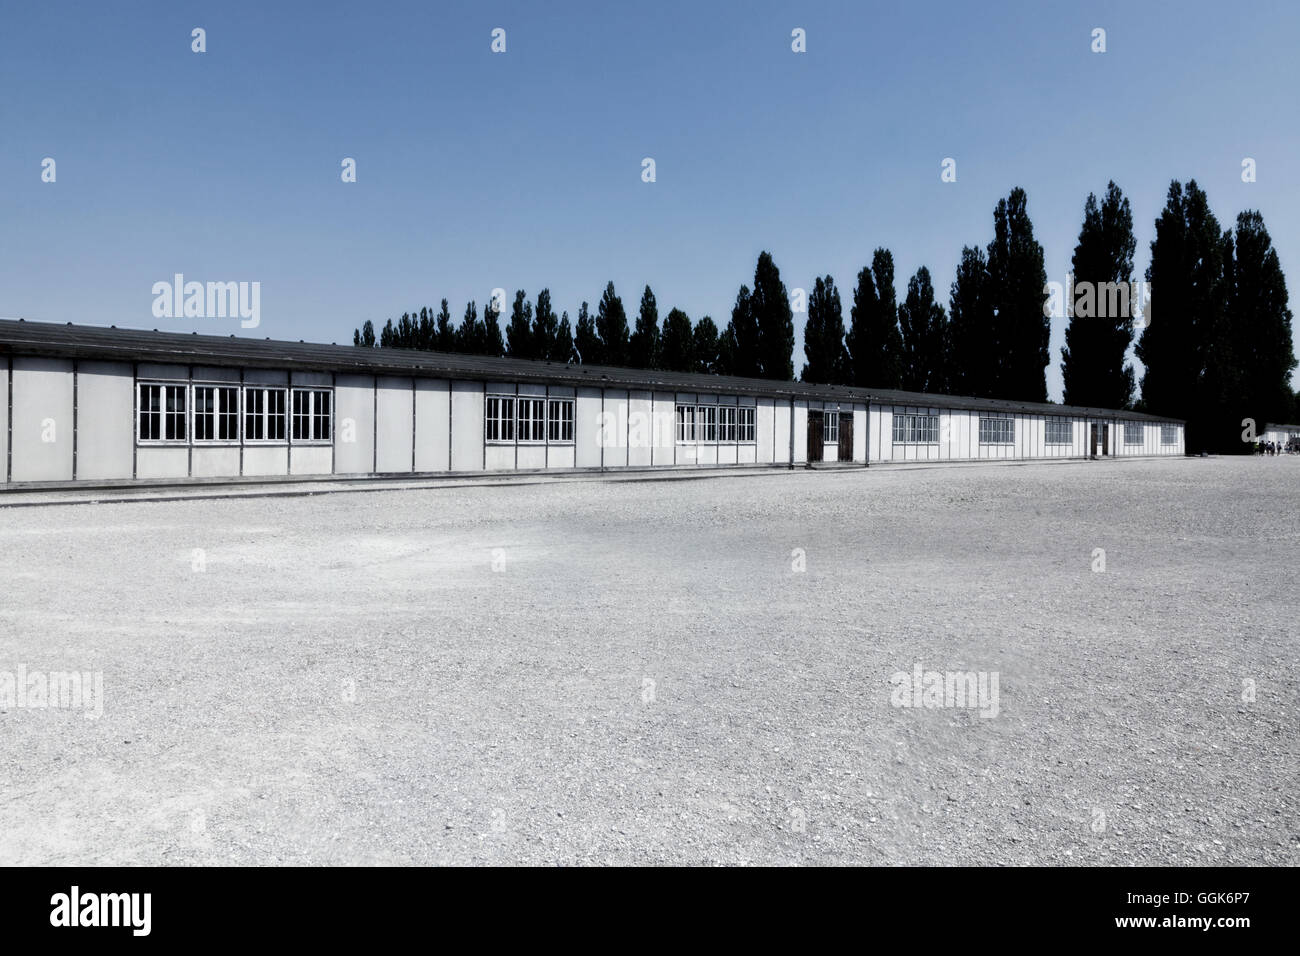 Barrack and grounds of Dachau Concentration camp, Dachau, Munich, Bavaria, Germany - Stock Image